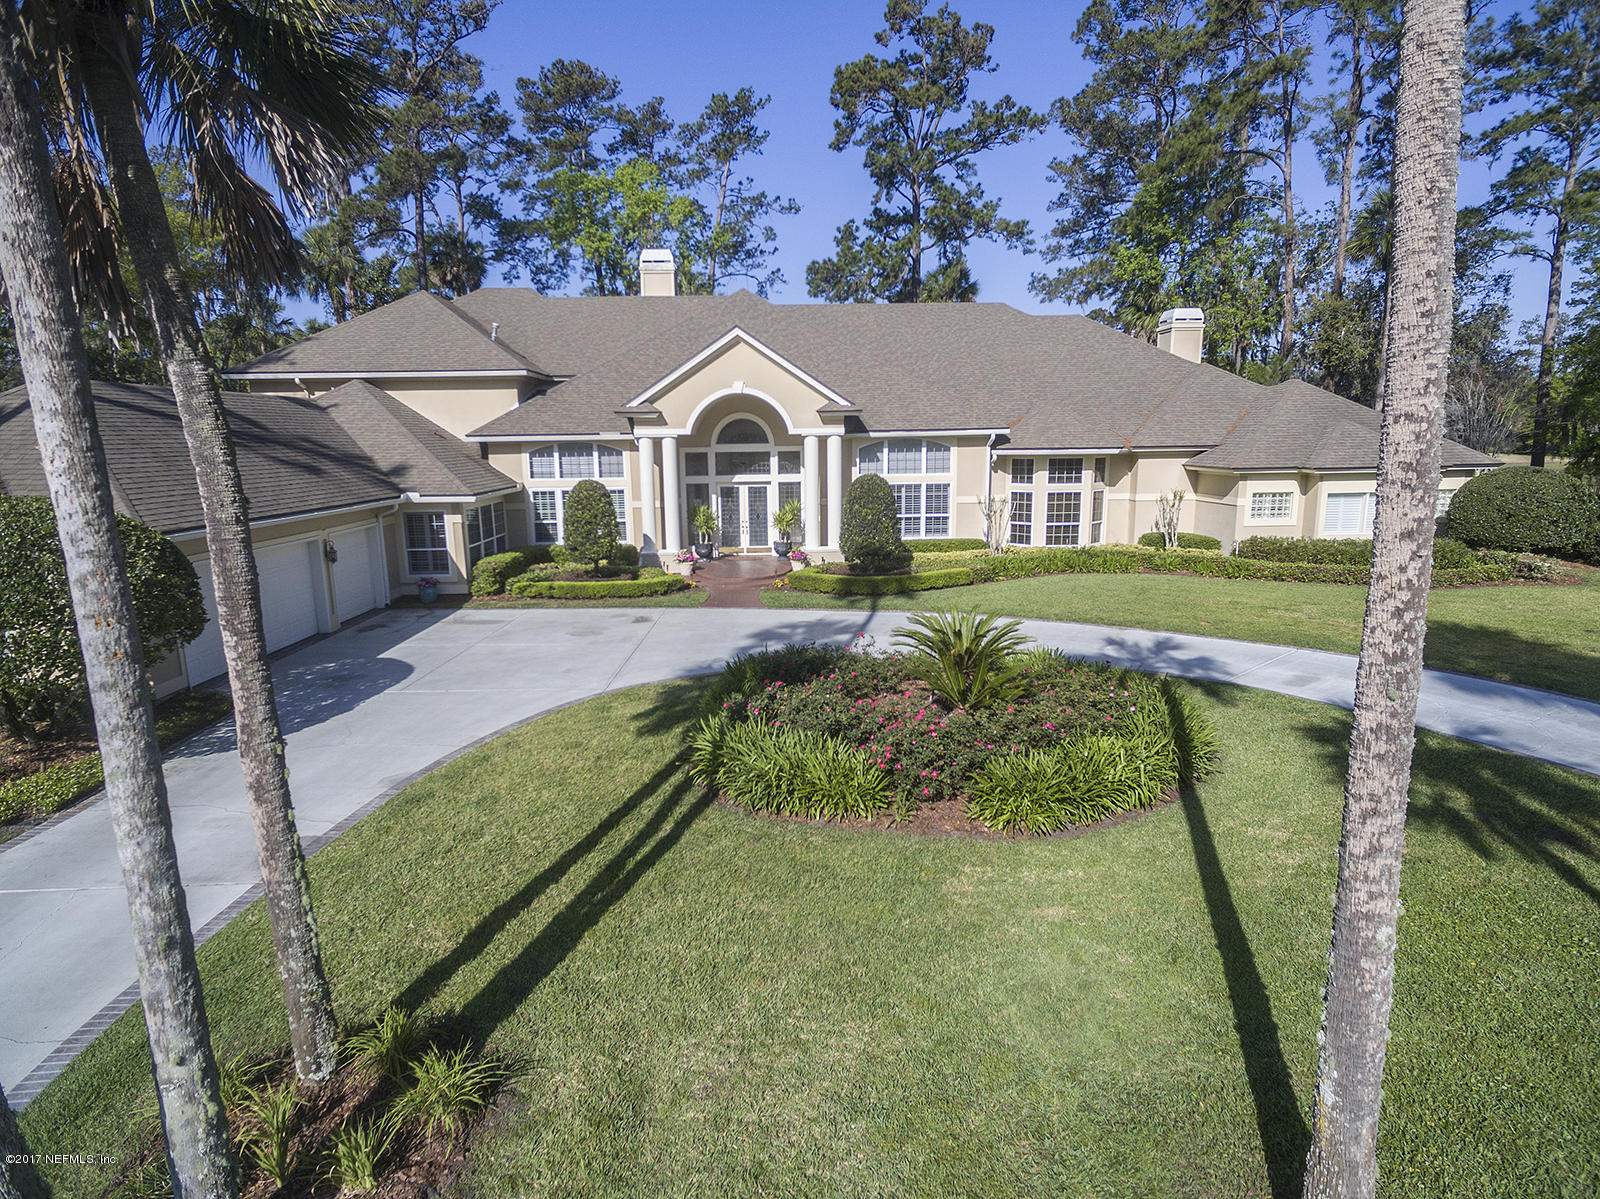 8052 WHISPER LAKE LN WEST, PONTE VEDRA BEACH, FL 32082